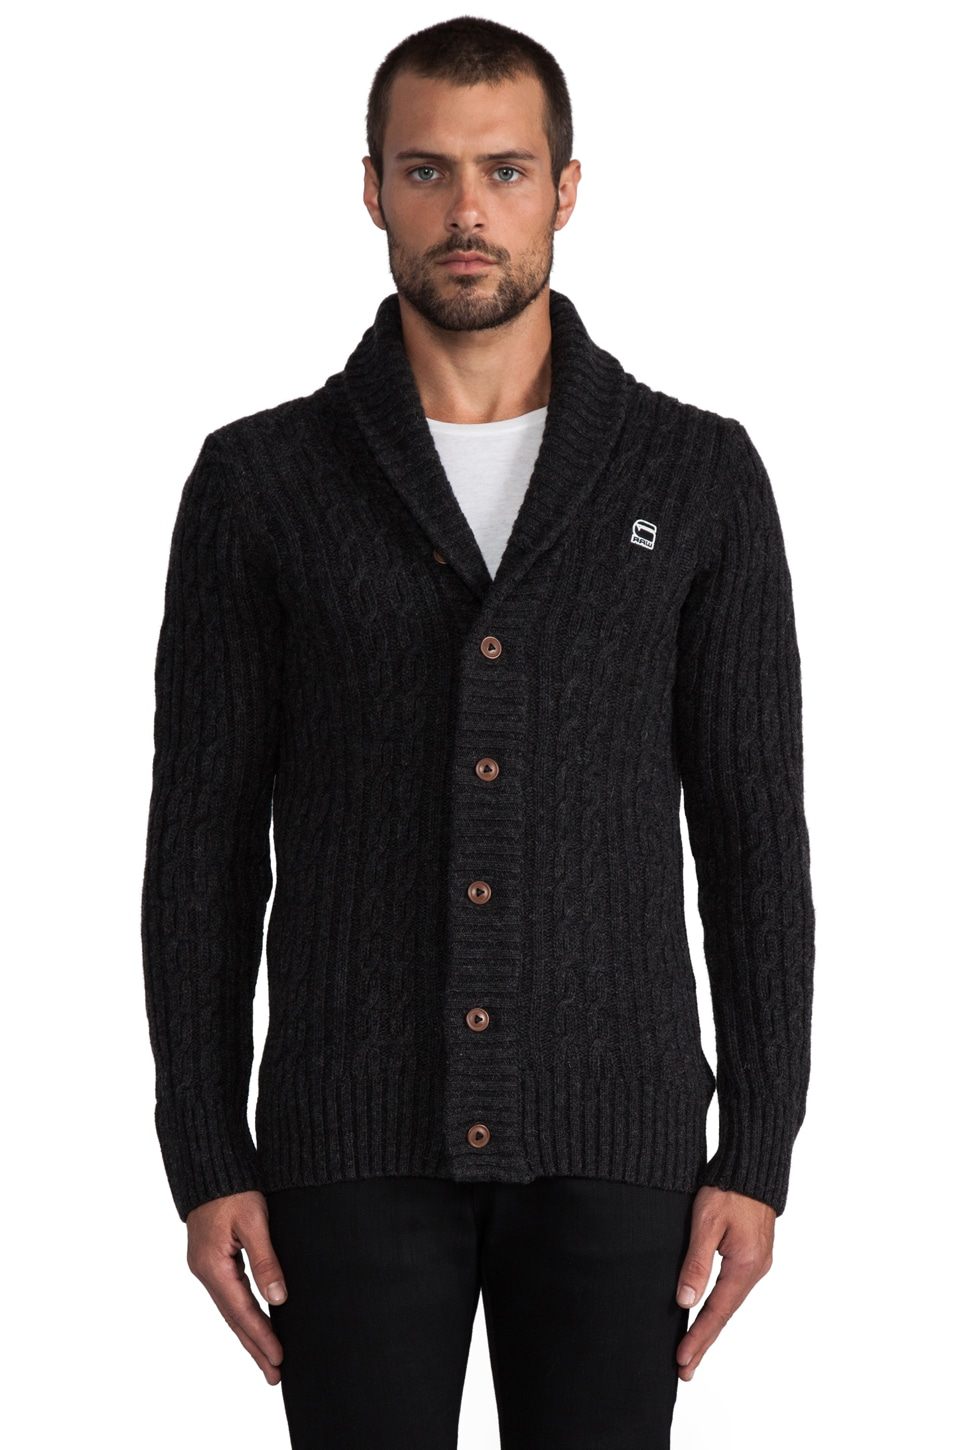 G-Star Nimrod Shawl Cardigan en Black Heather